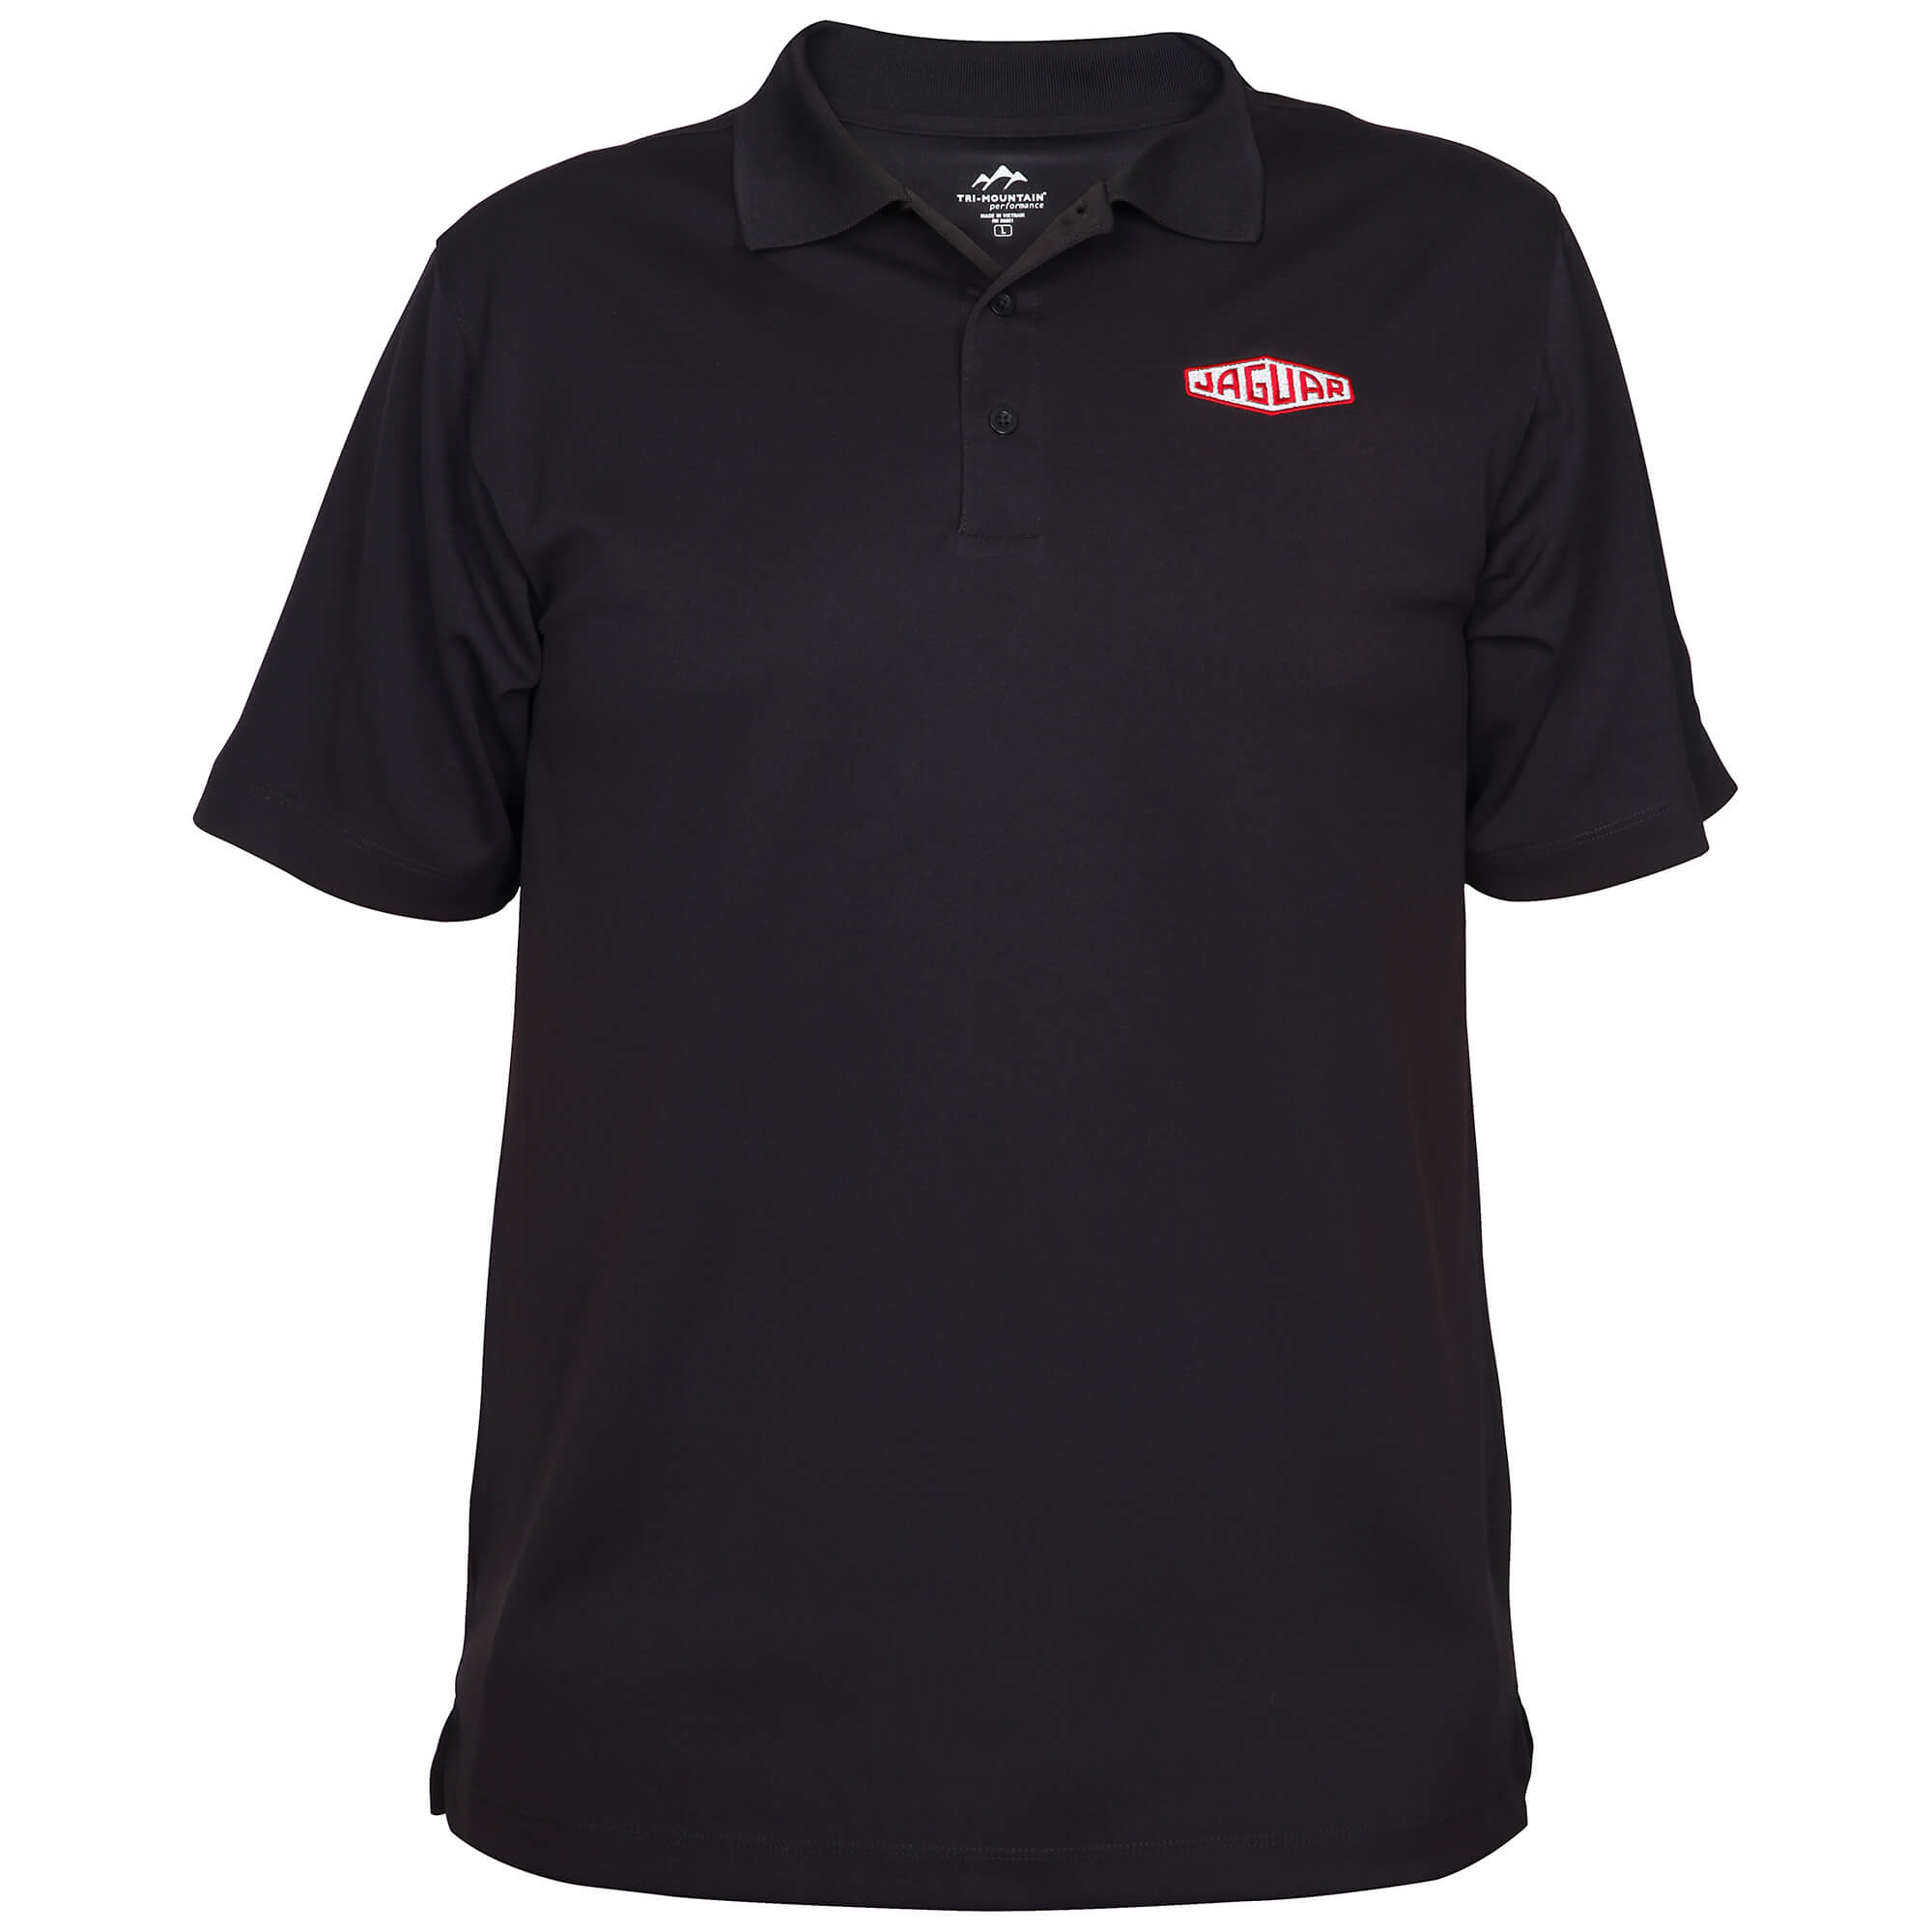 Unisex Classic Polo Shirt with Embroidered Mini Car Logo